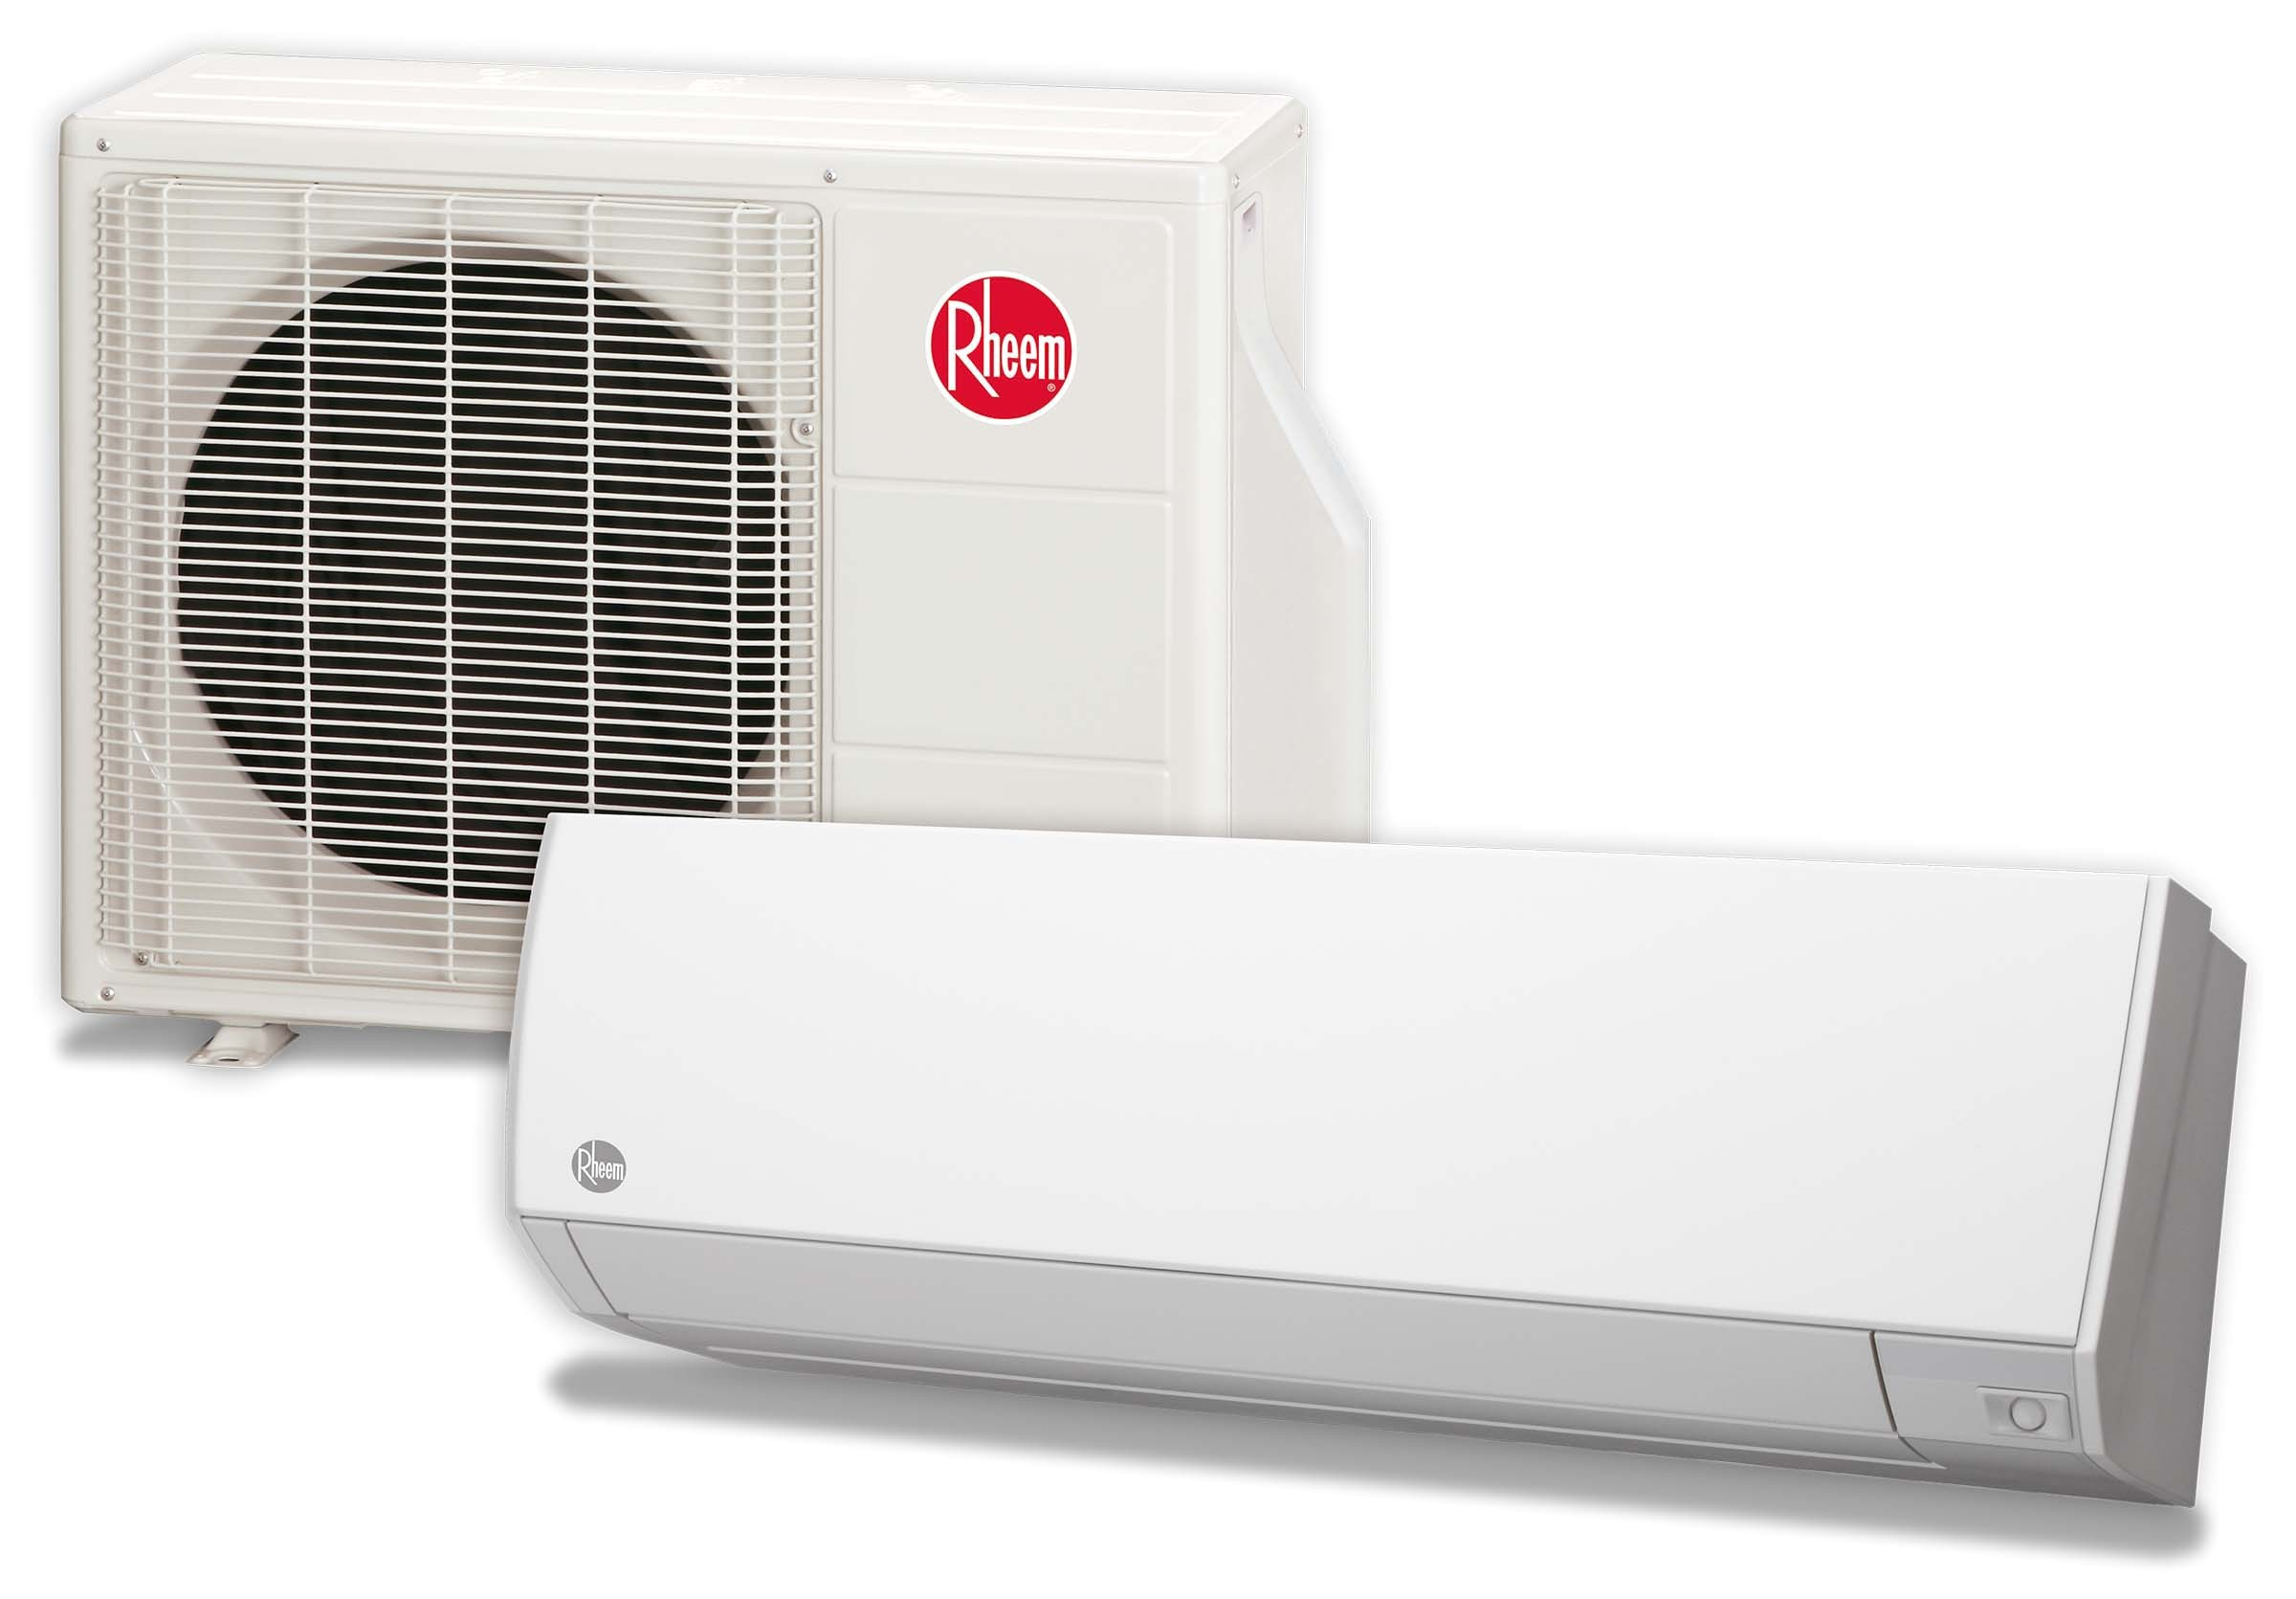 rheem and ruud release new mini split air conditioning products contracting business